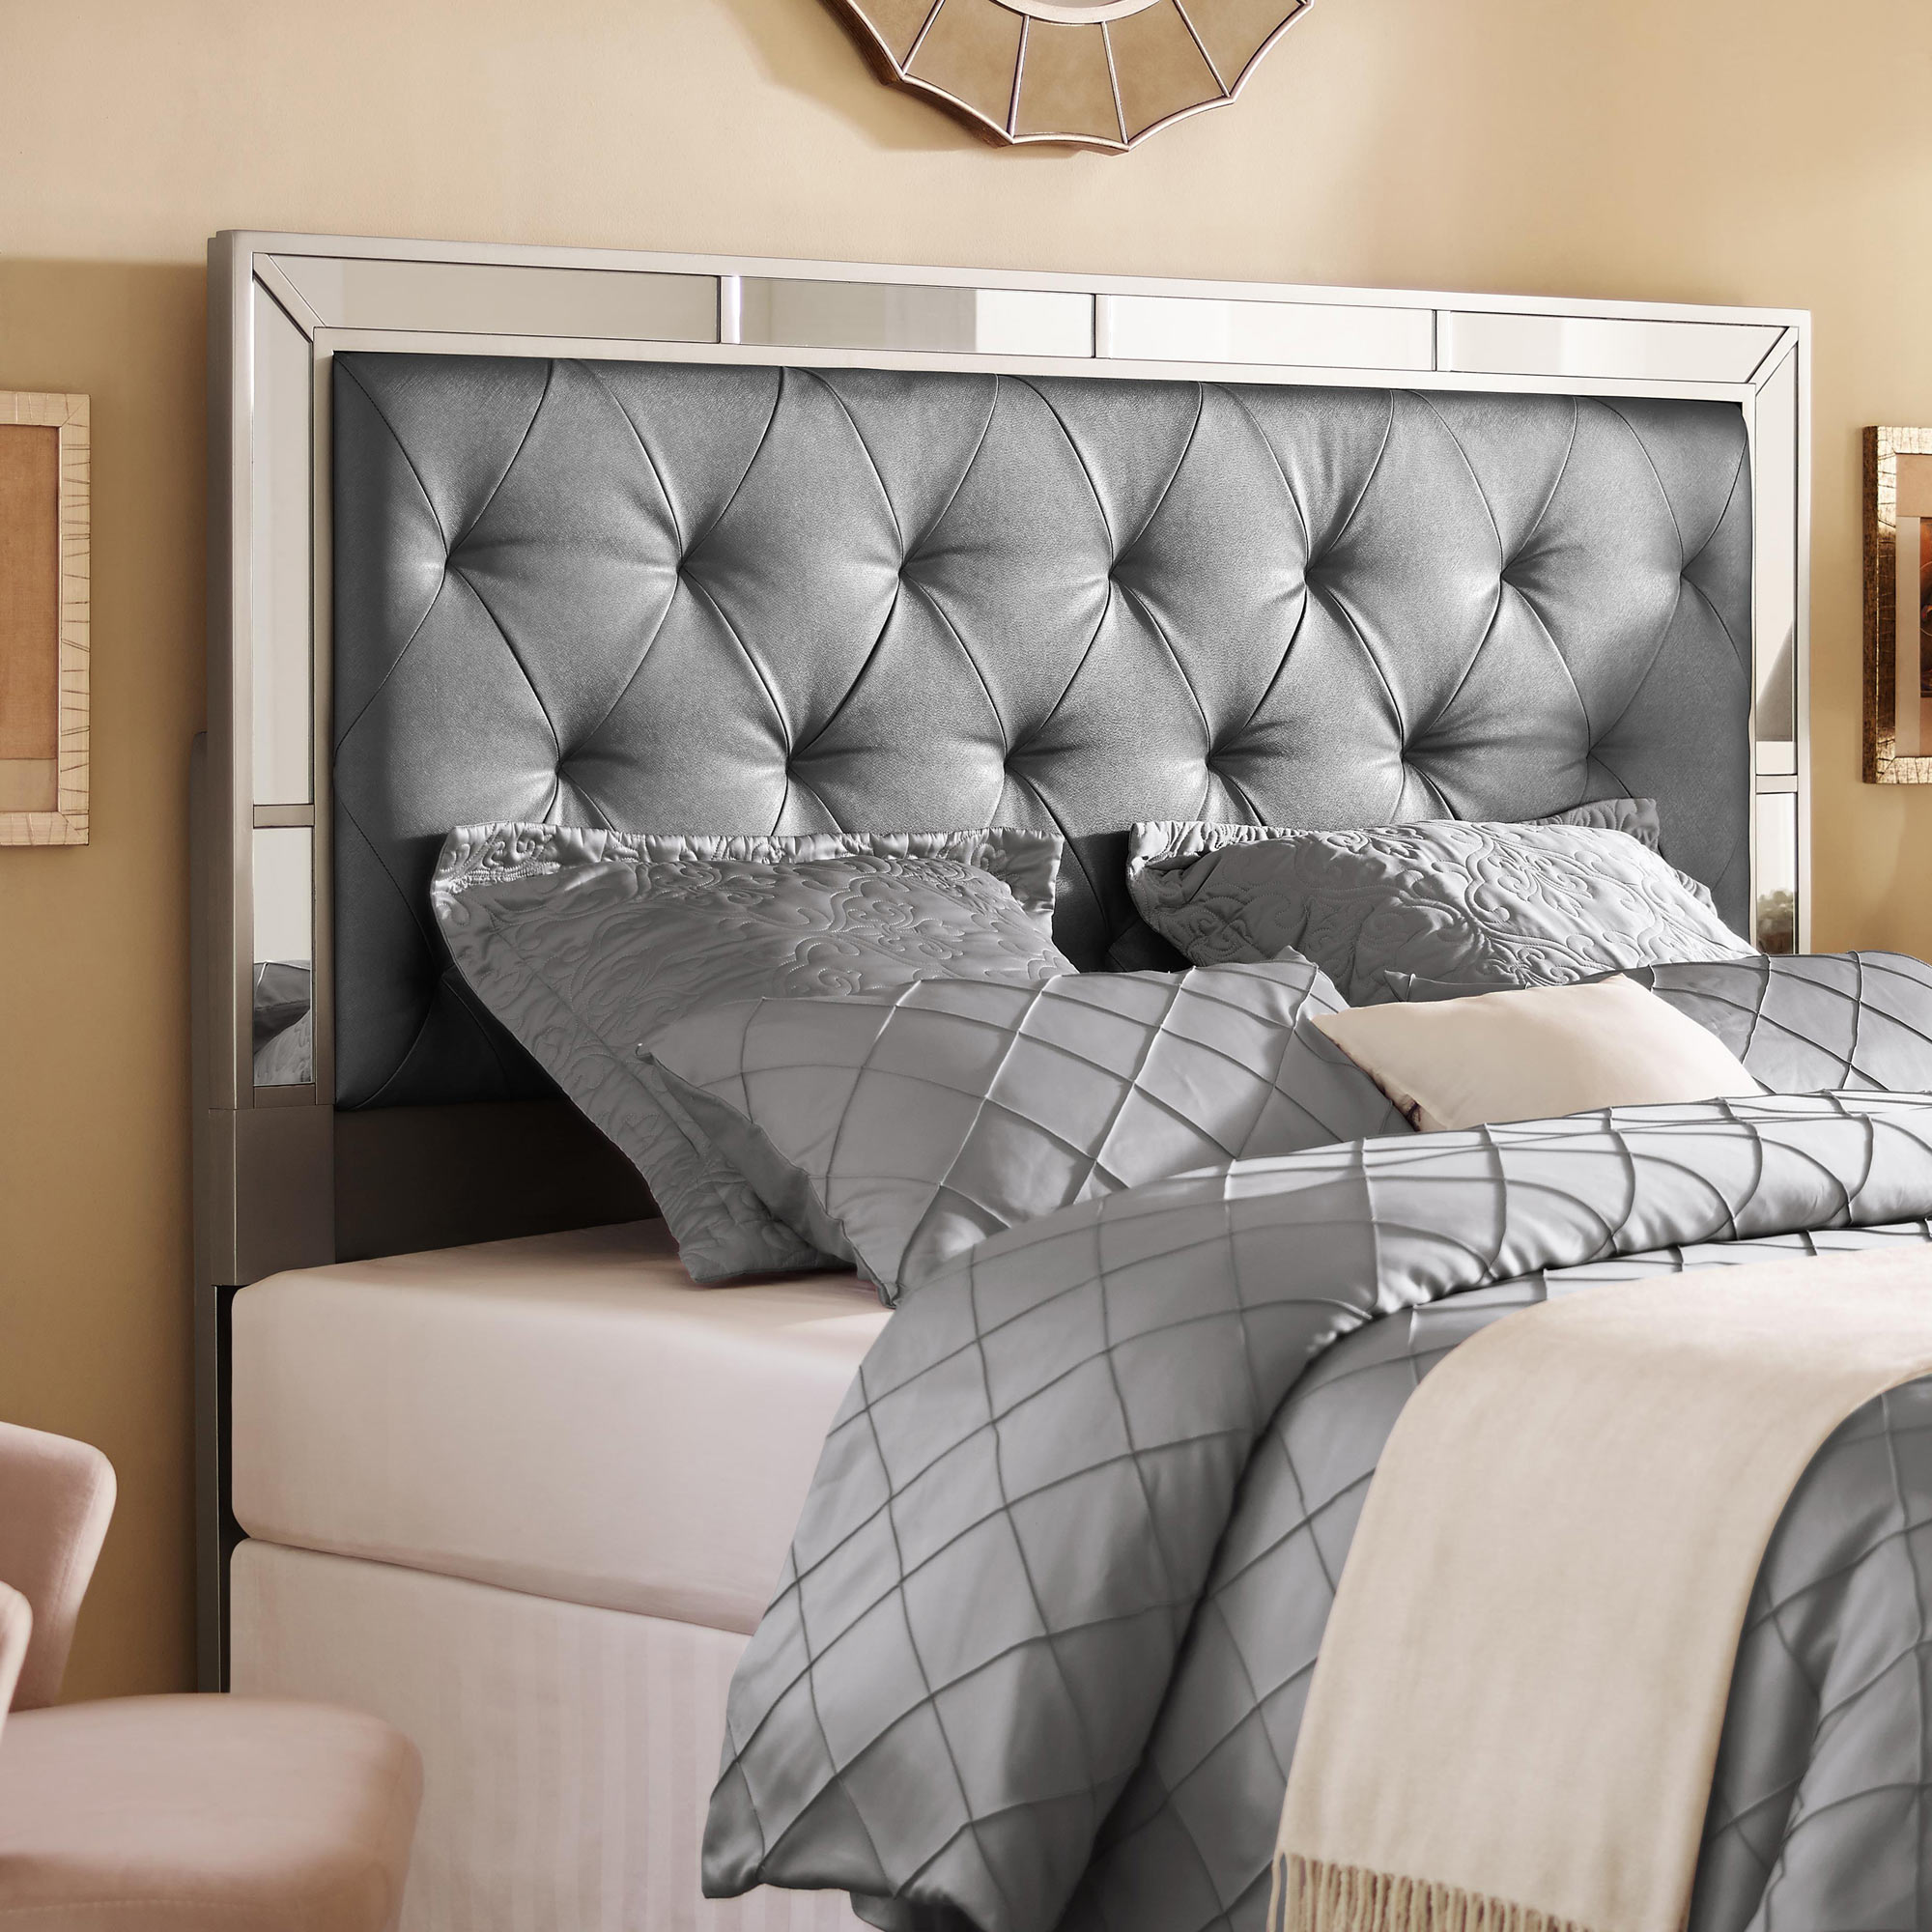 FullQueen Upholstered Headboard Pulaski Home Gallery Stores